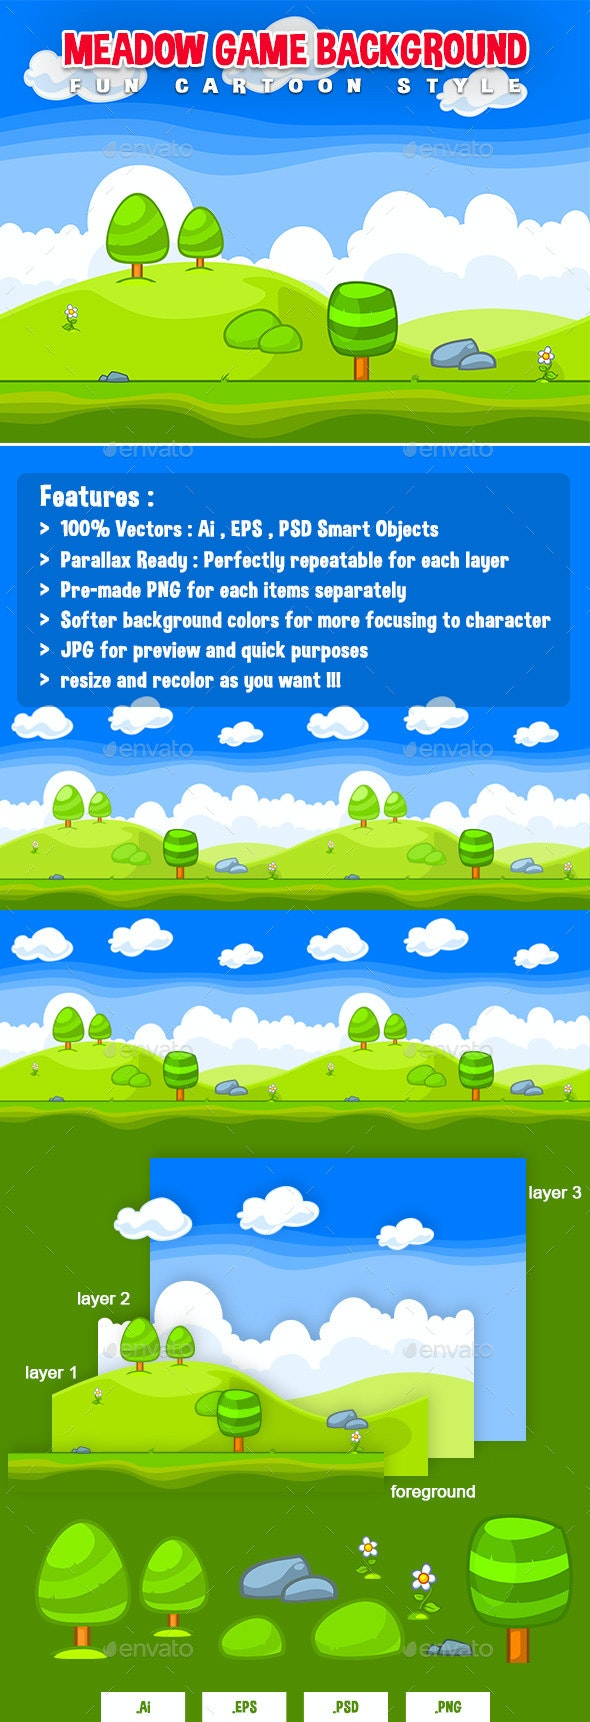 Meadow Game Background - Fun Cartoon Style - Backgrounds Game Assets